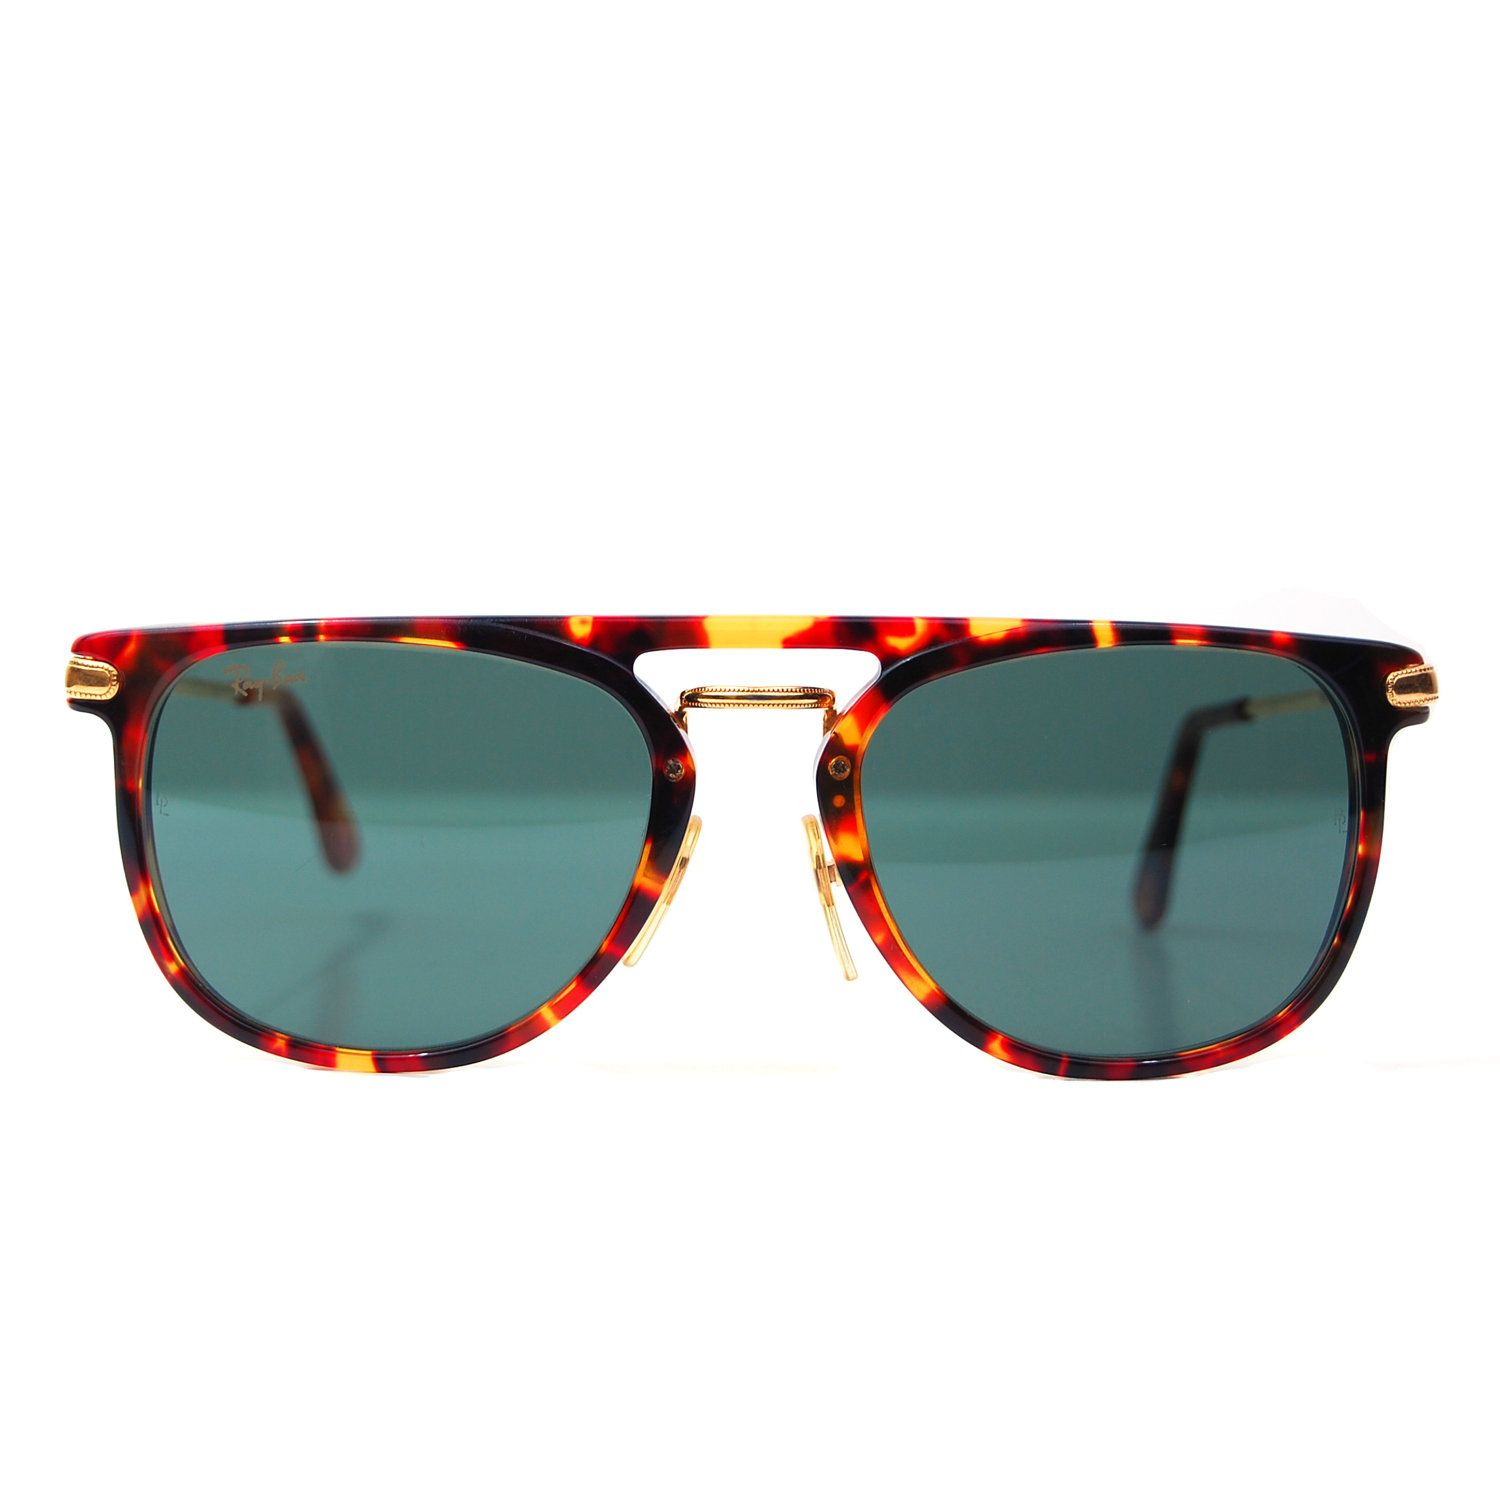 69466f8a9dc0 Vintage Ray Ban Bausch and Lomb W1542 Tortoise Shell Traditionals Premier  Combo Sunglasses.  249.00